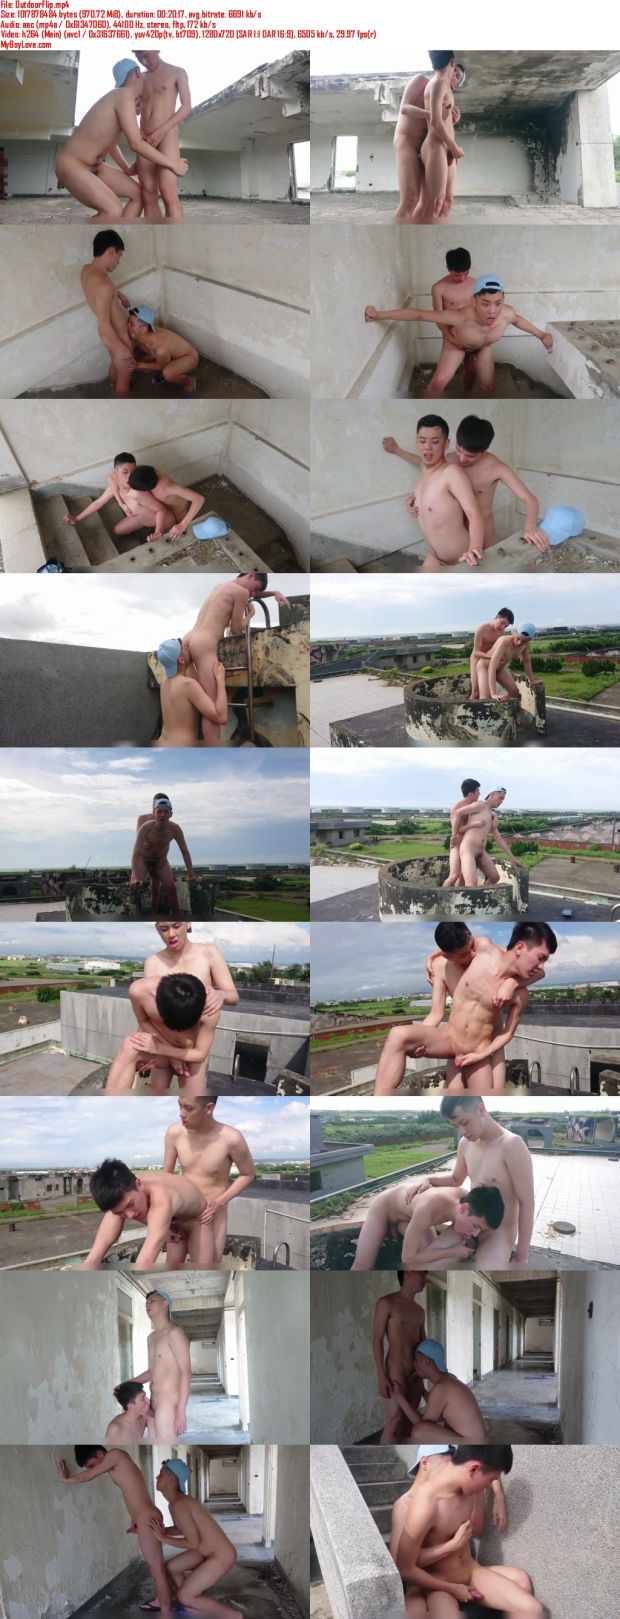 Chinese maleshow – Amateur Contribution – Outdoor Flip 野外互操